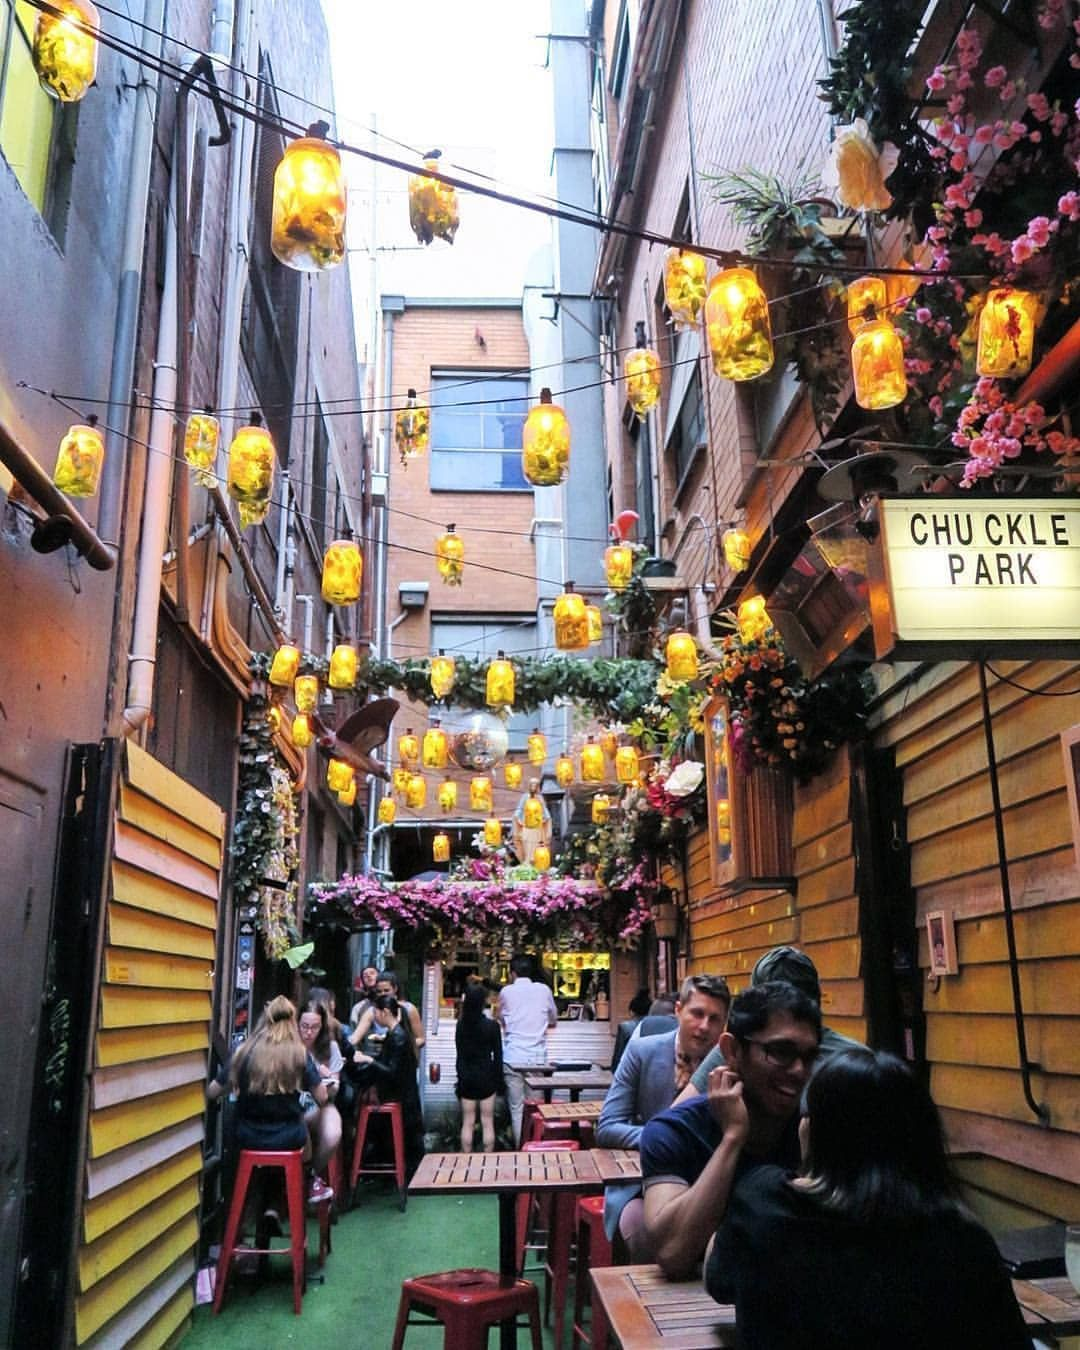 Try not to miss this cute laneway spot wedged between